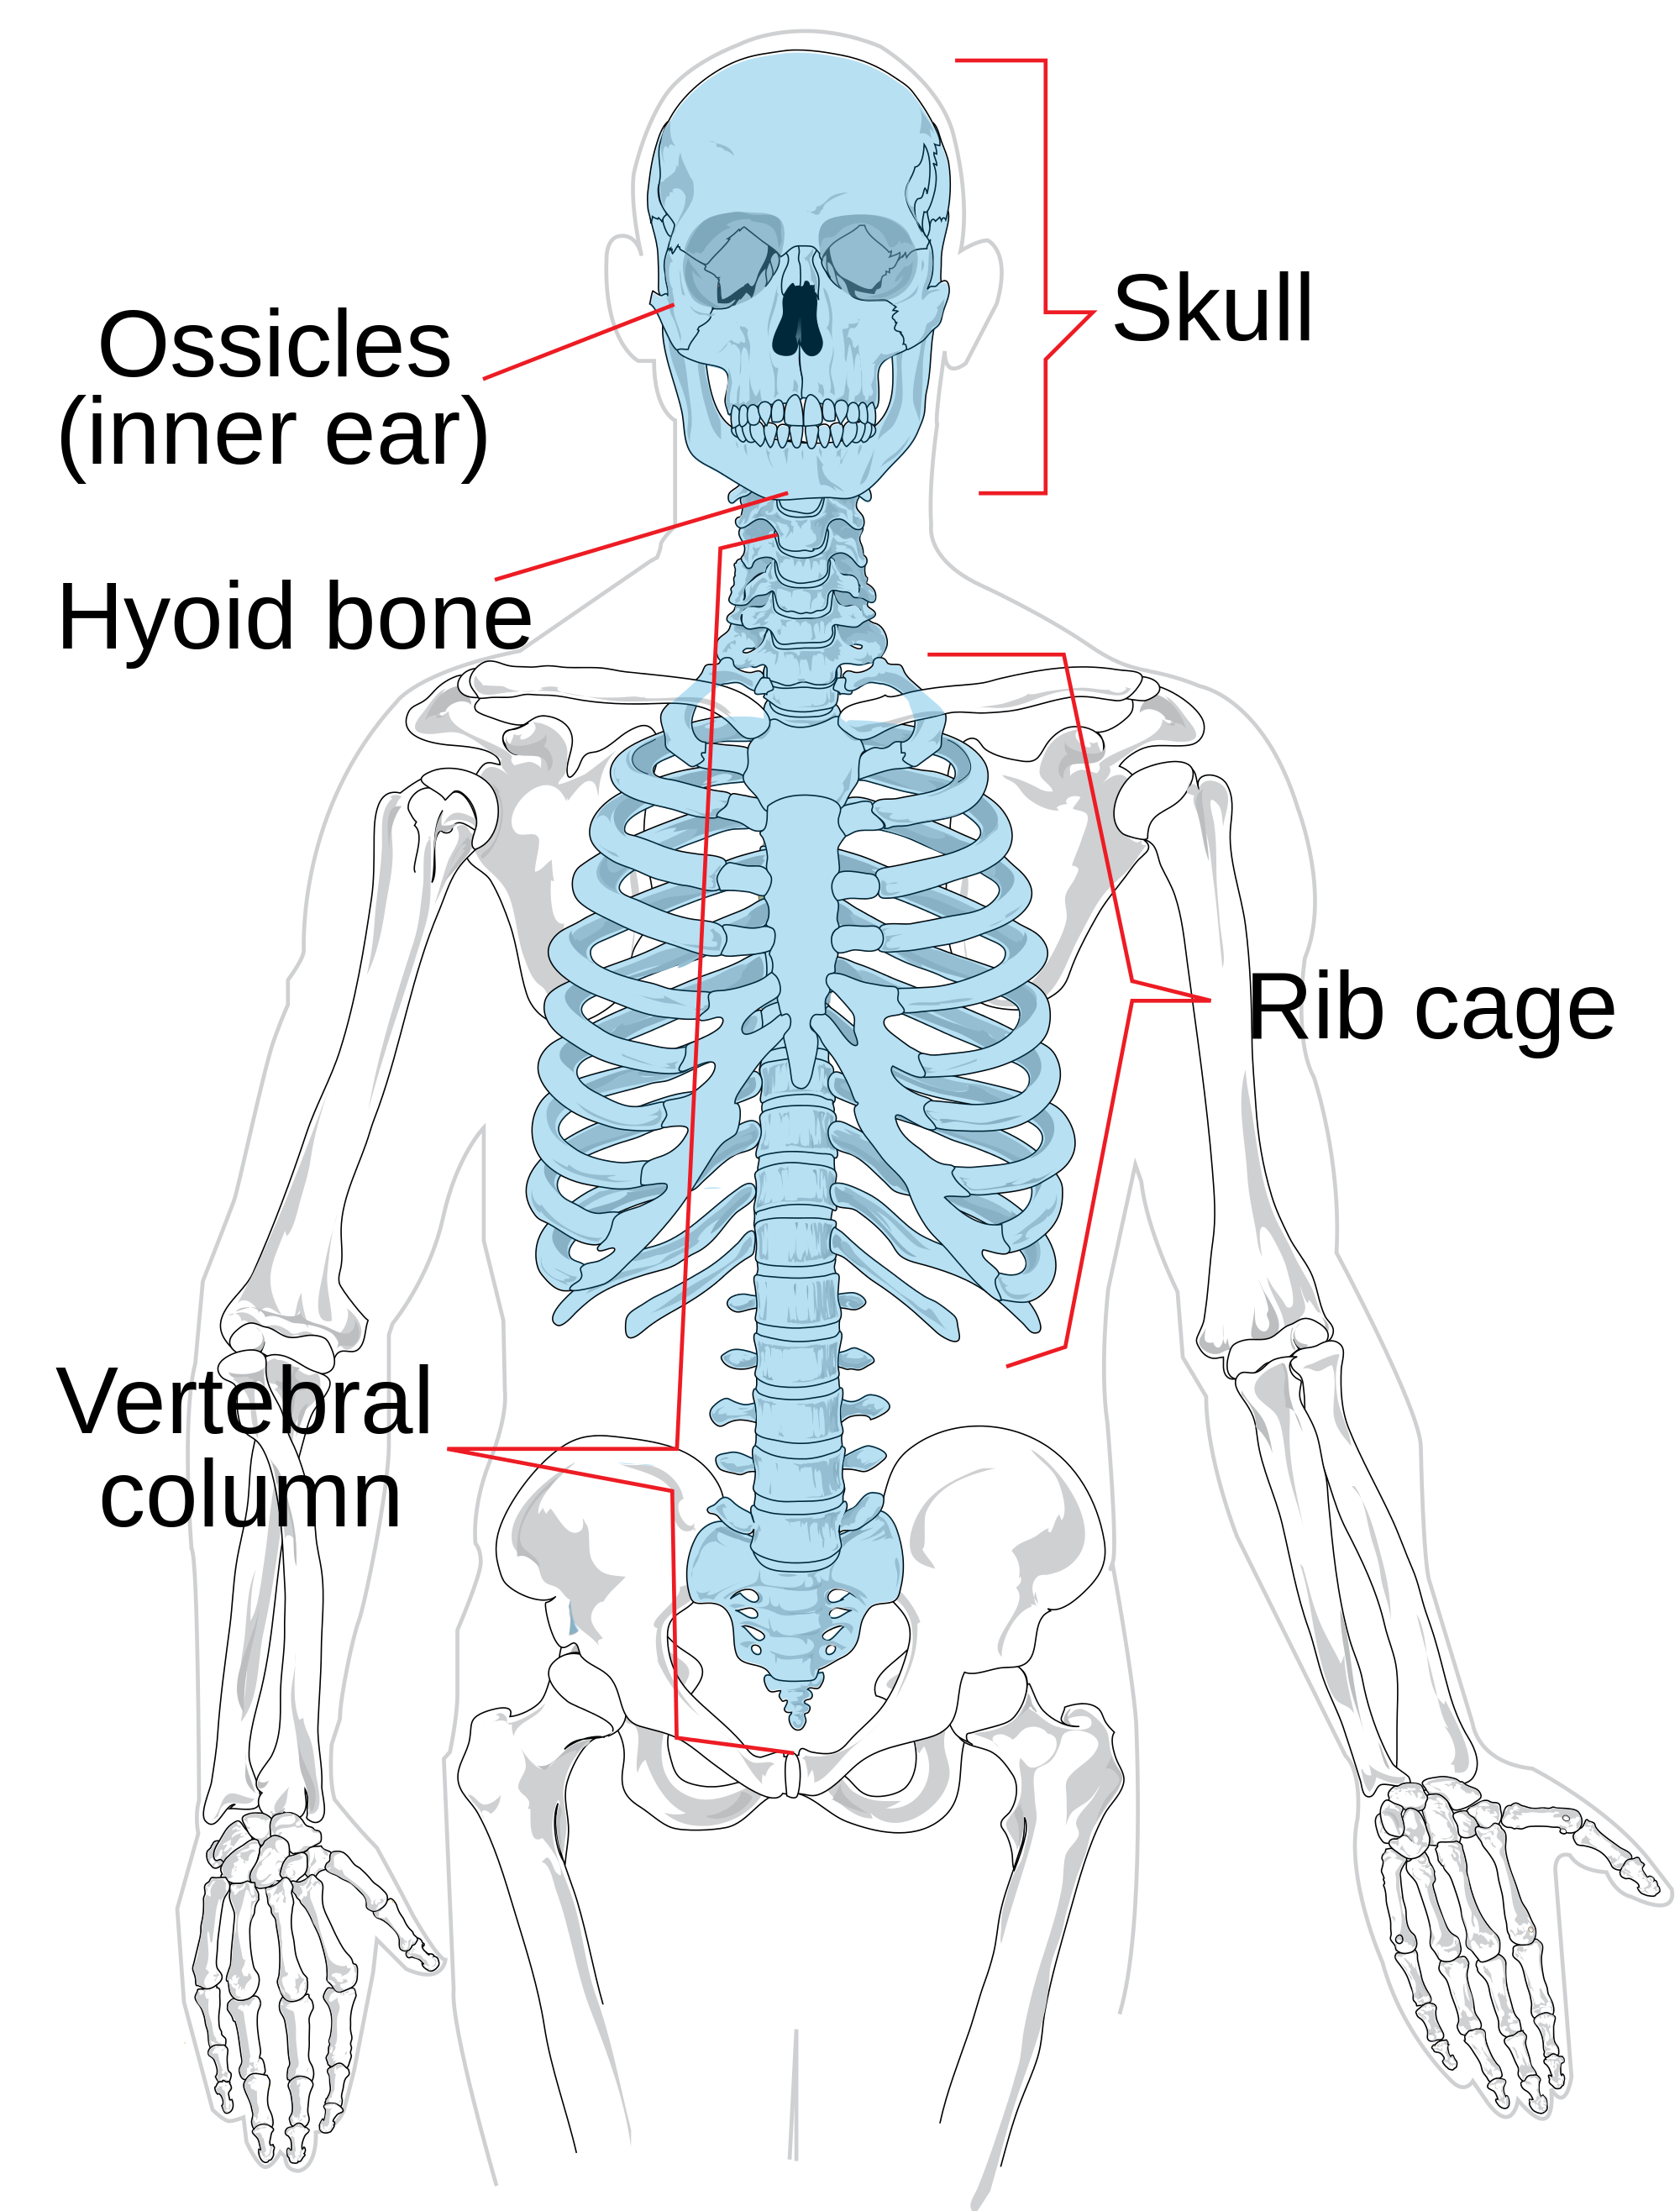 Naga drawing skeletal system. File axial skeleton diagram